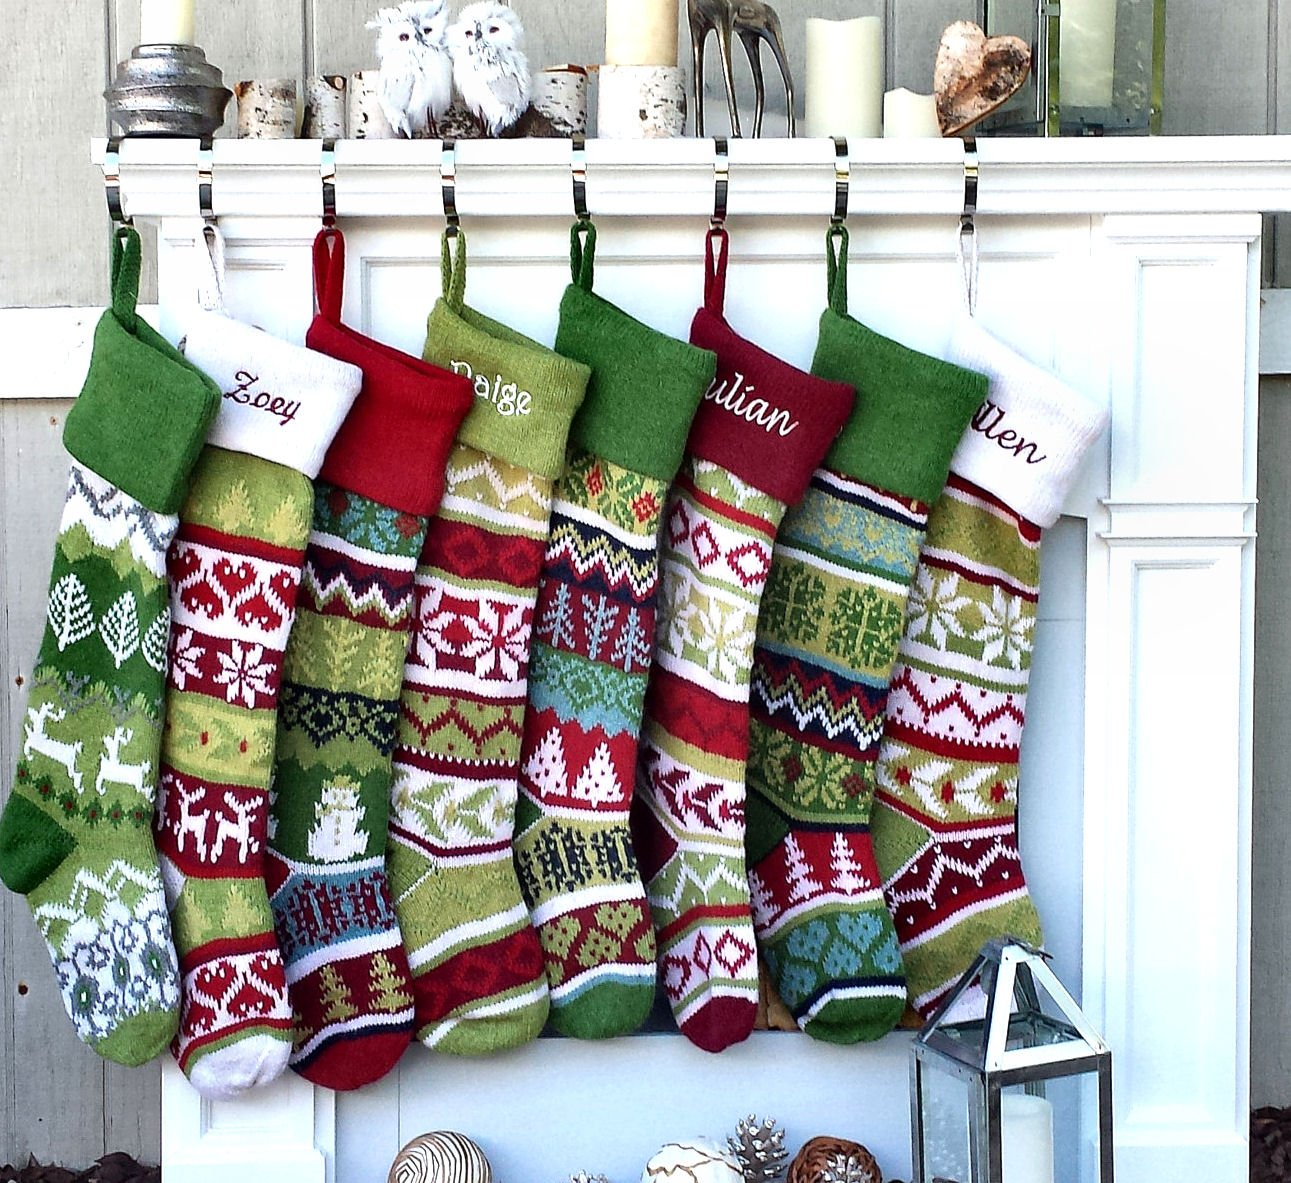 Personalized Knit Christmas Stockings - Green - Red : Green Cuff ...